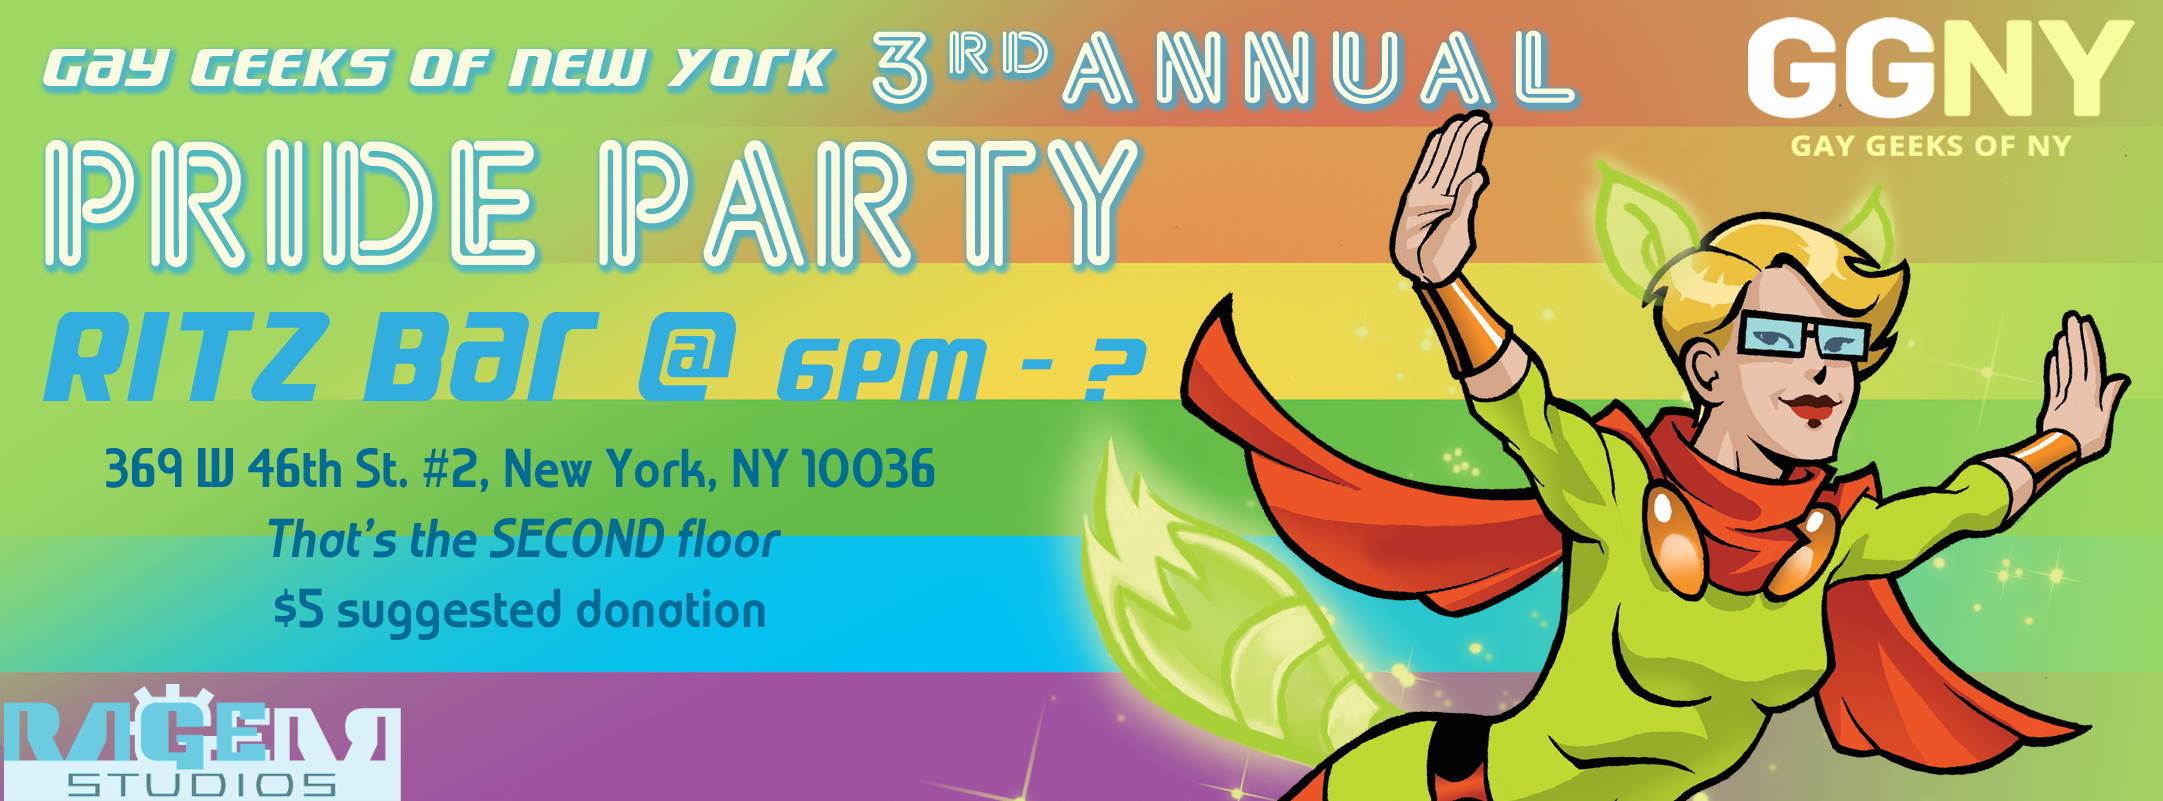 ggnyFBpartybanner.png